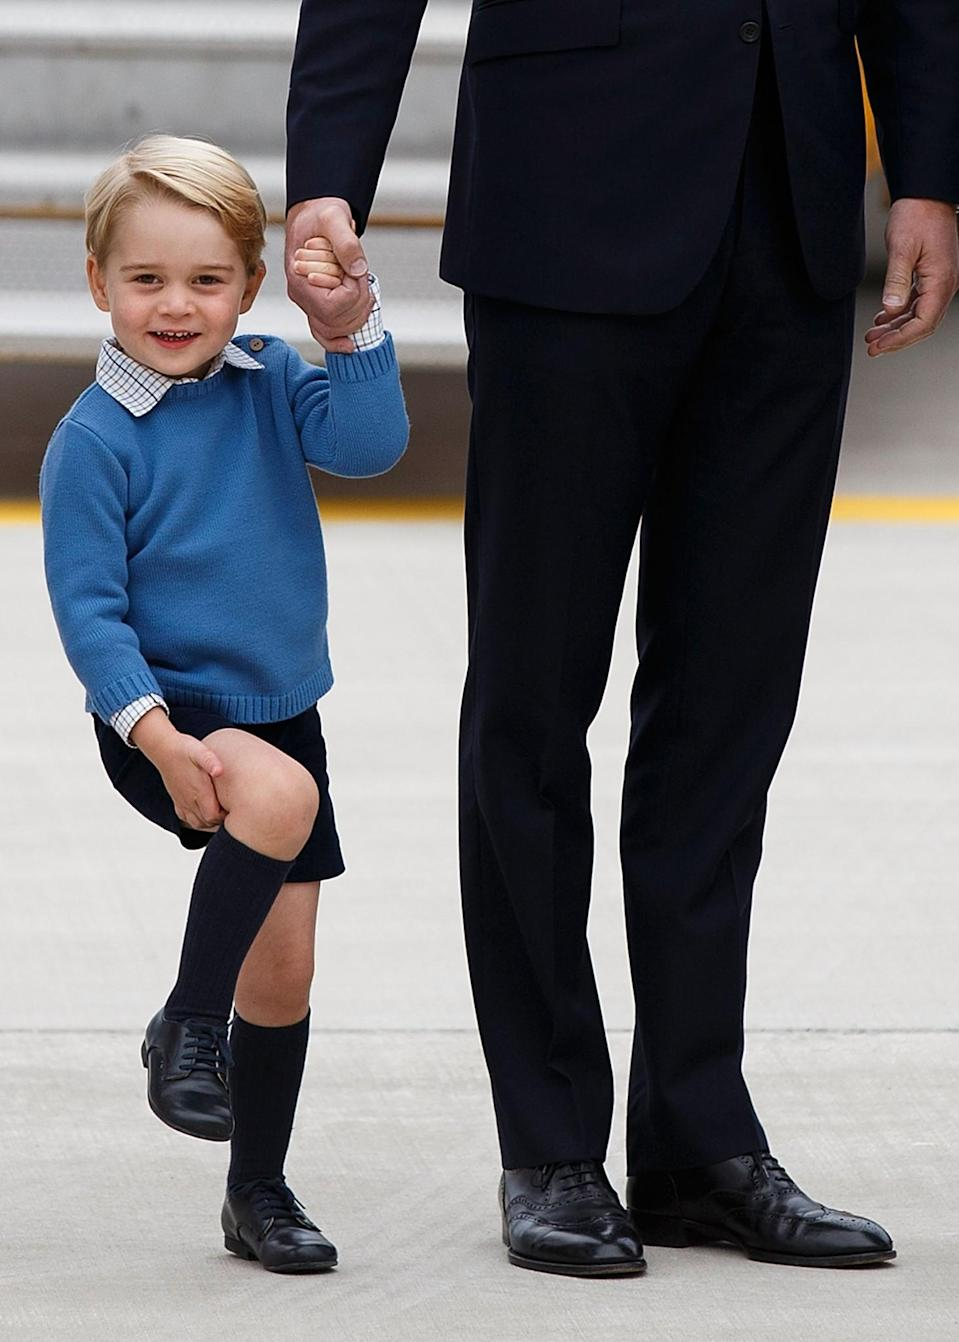 <p>Sometimes he'd wear high socks. [Photo: Getty] </p>